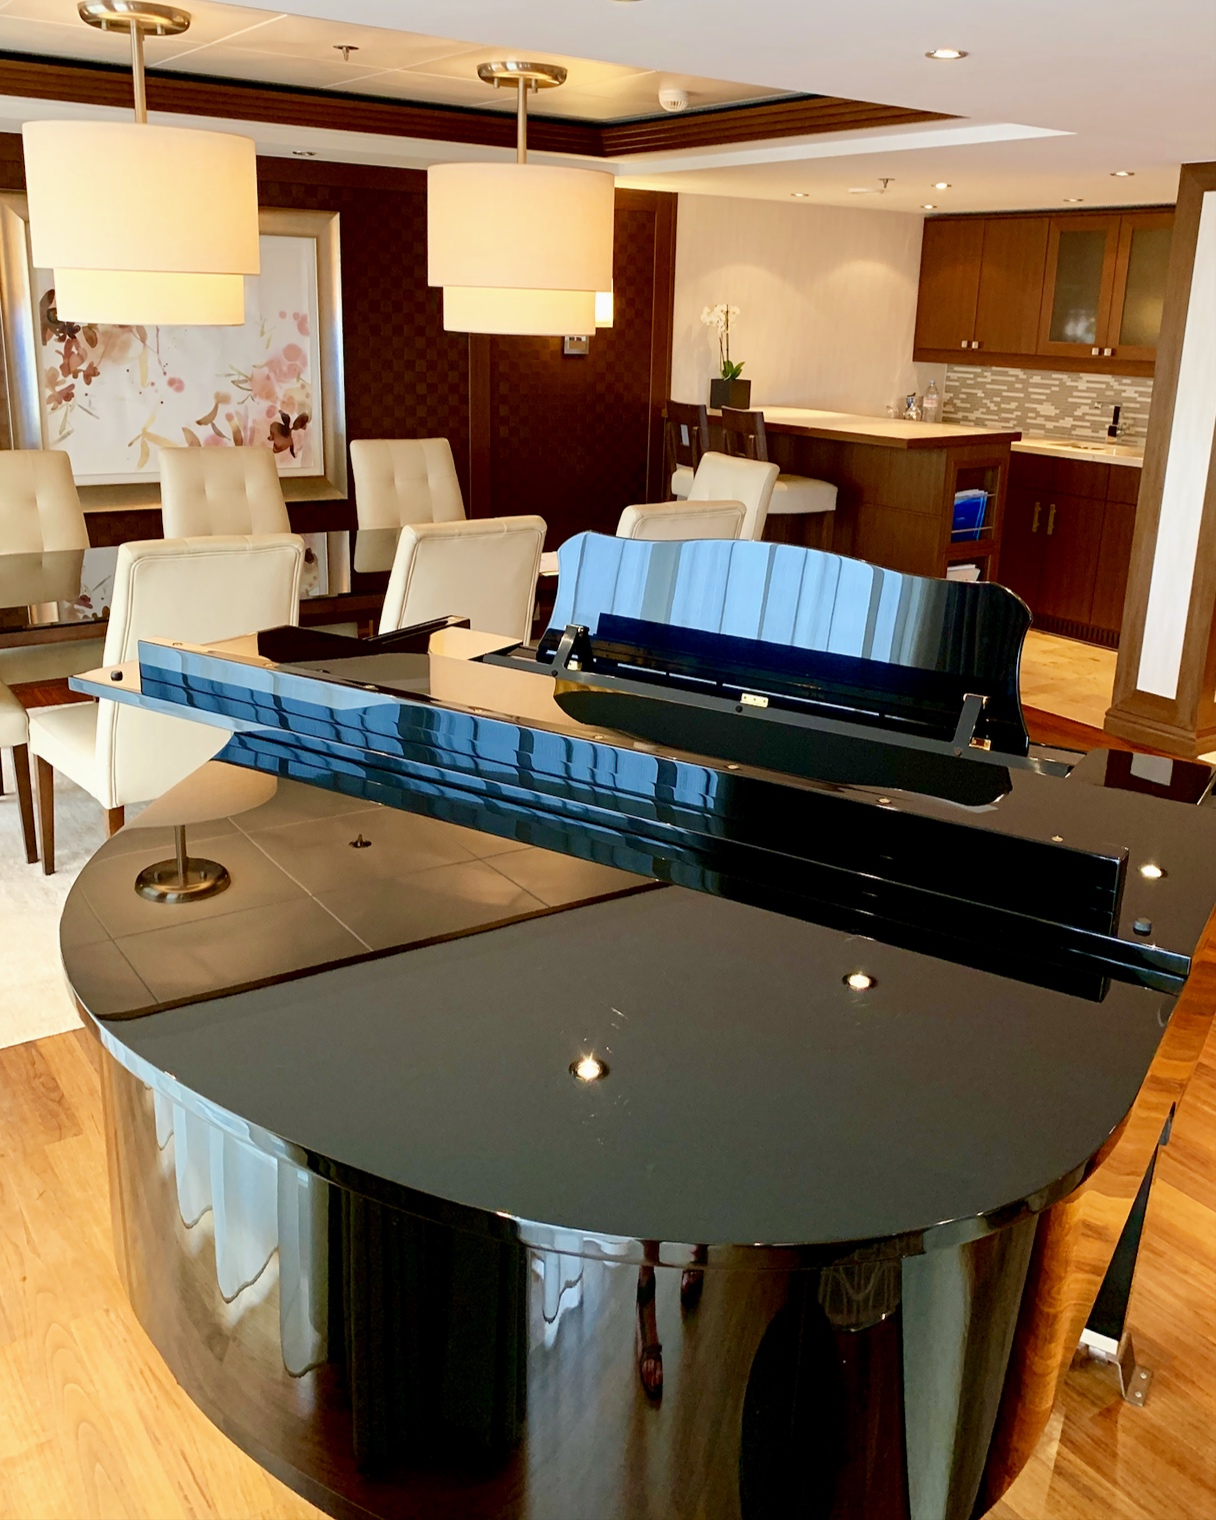 The Grand Piano, dining and kitchen area